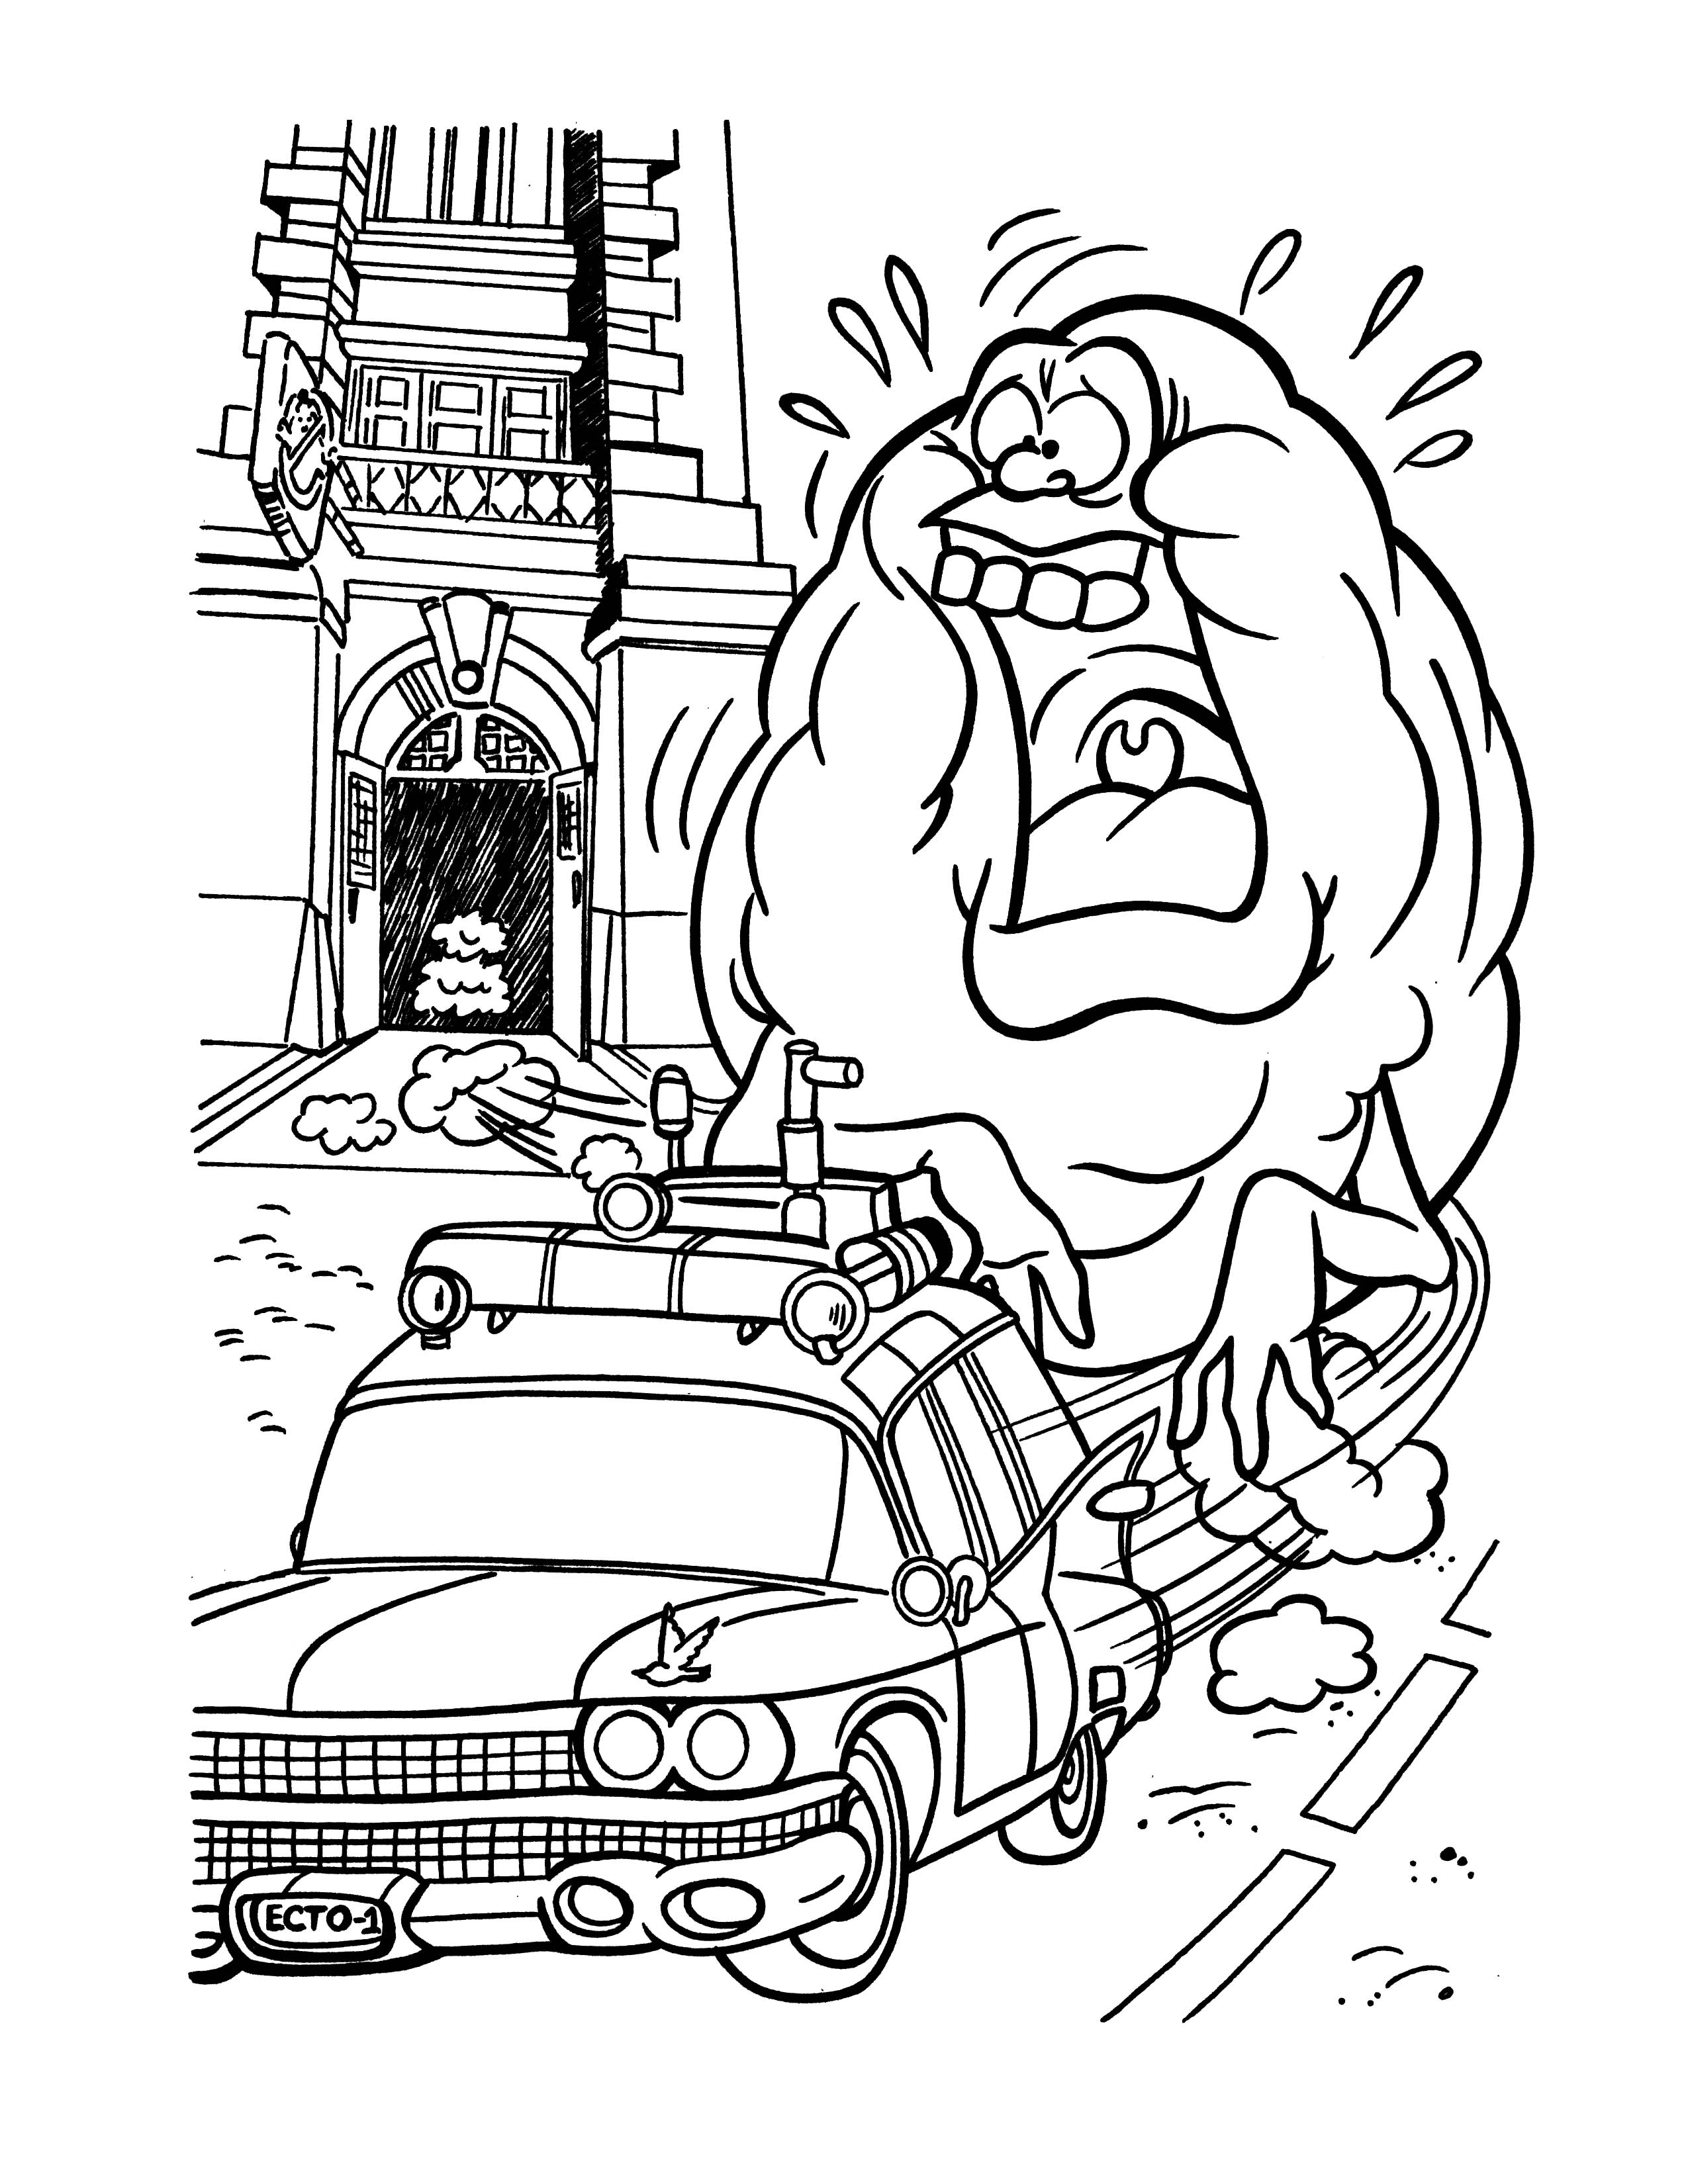 ghostbusters coloring pages - ghostbusters coloring pages